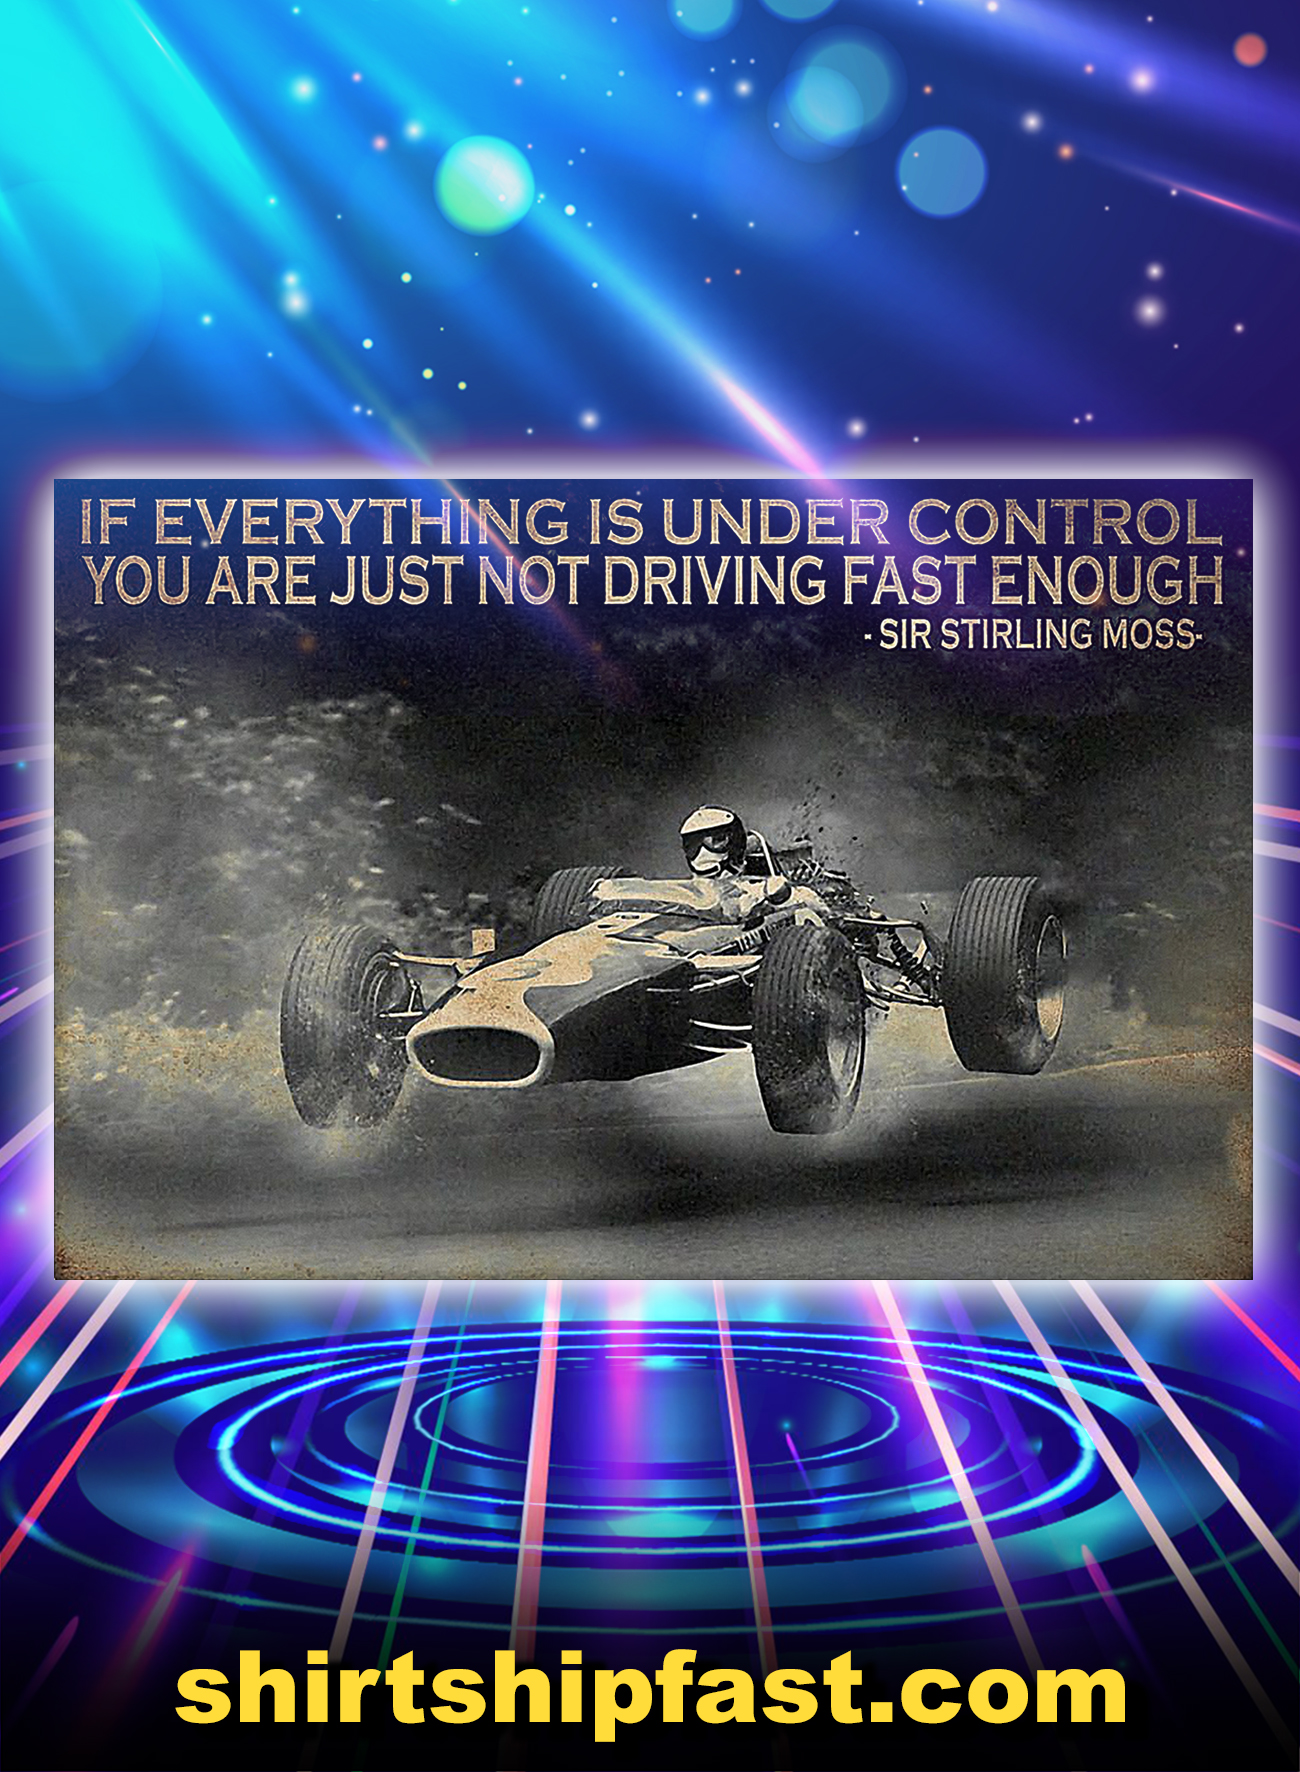 Sir stirling moss If everything is under control you are just not driving fast enough poster - A4